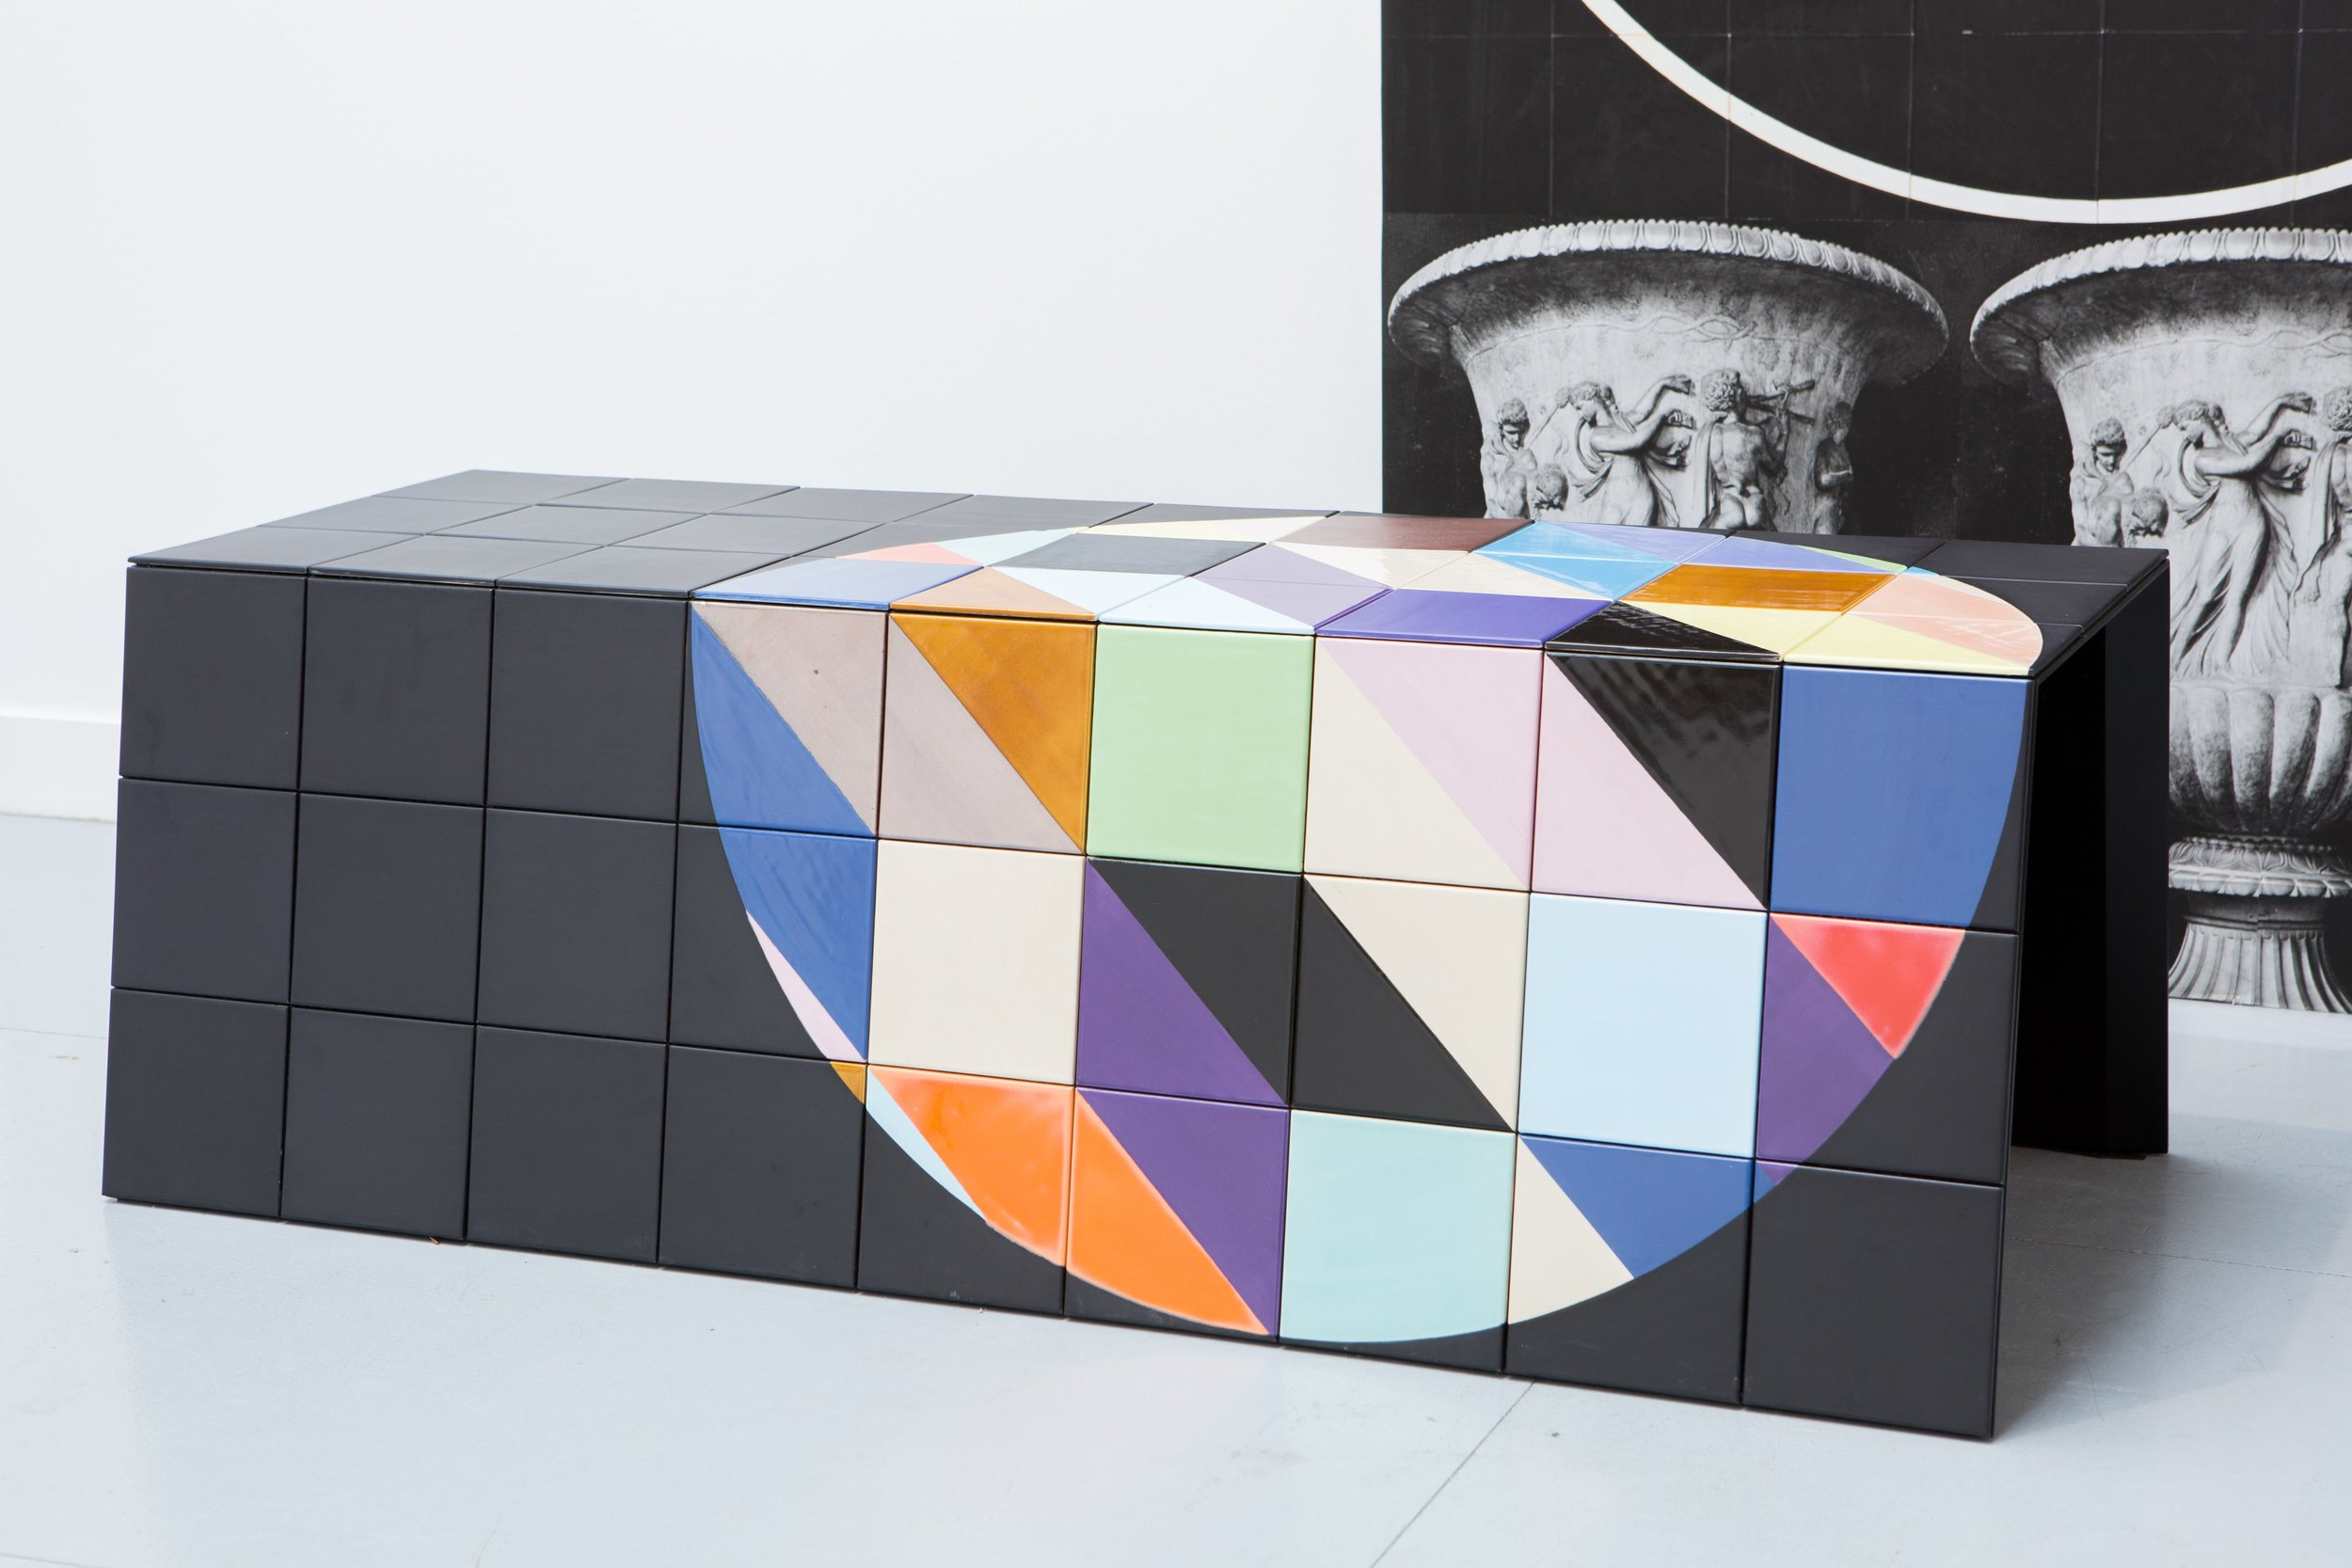 Claudia Wieser, 2015, (bench 3) , painted tiles,45 x 55 x 135 cm